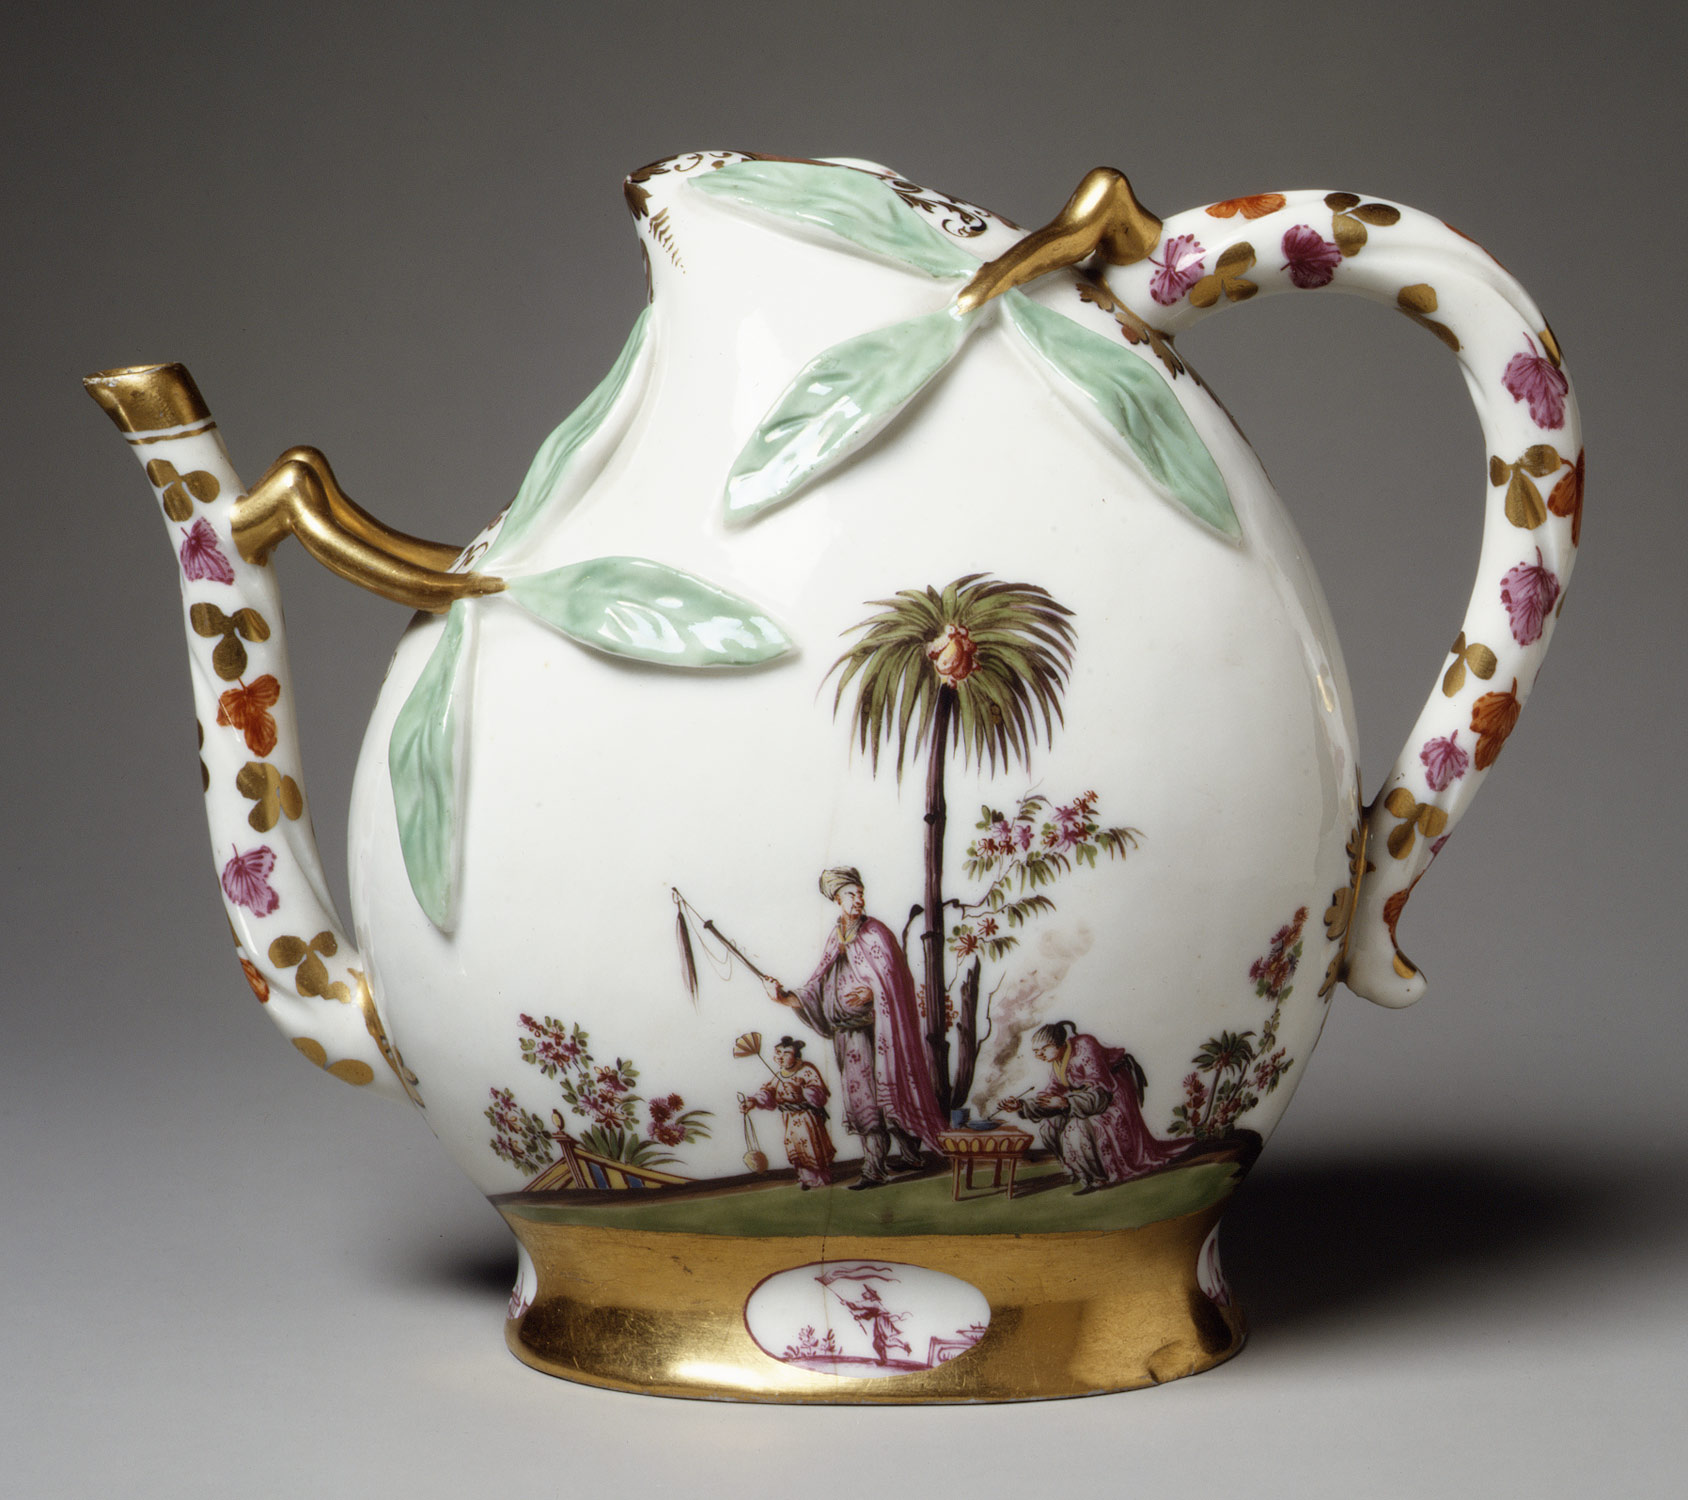 German And Austrian Porcelain In The Eighteenth Century